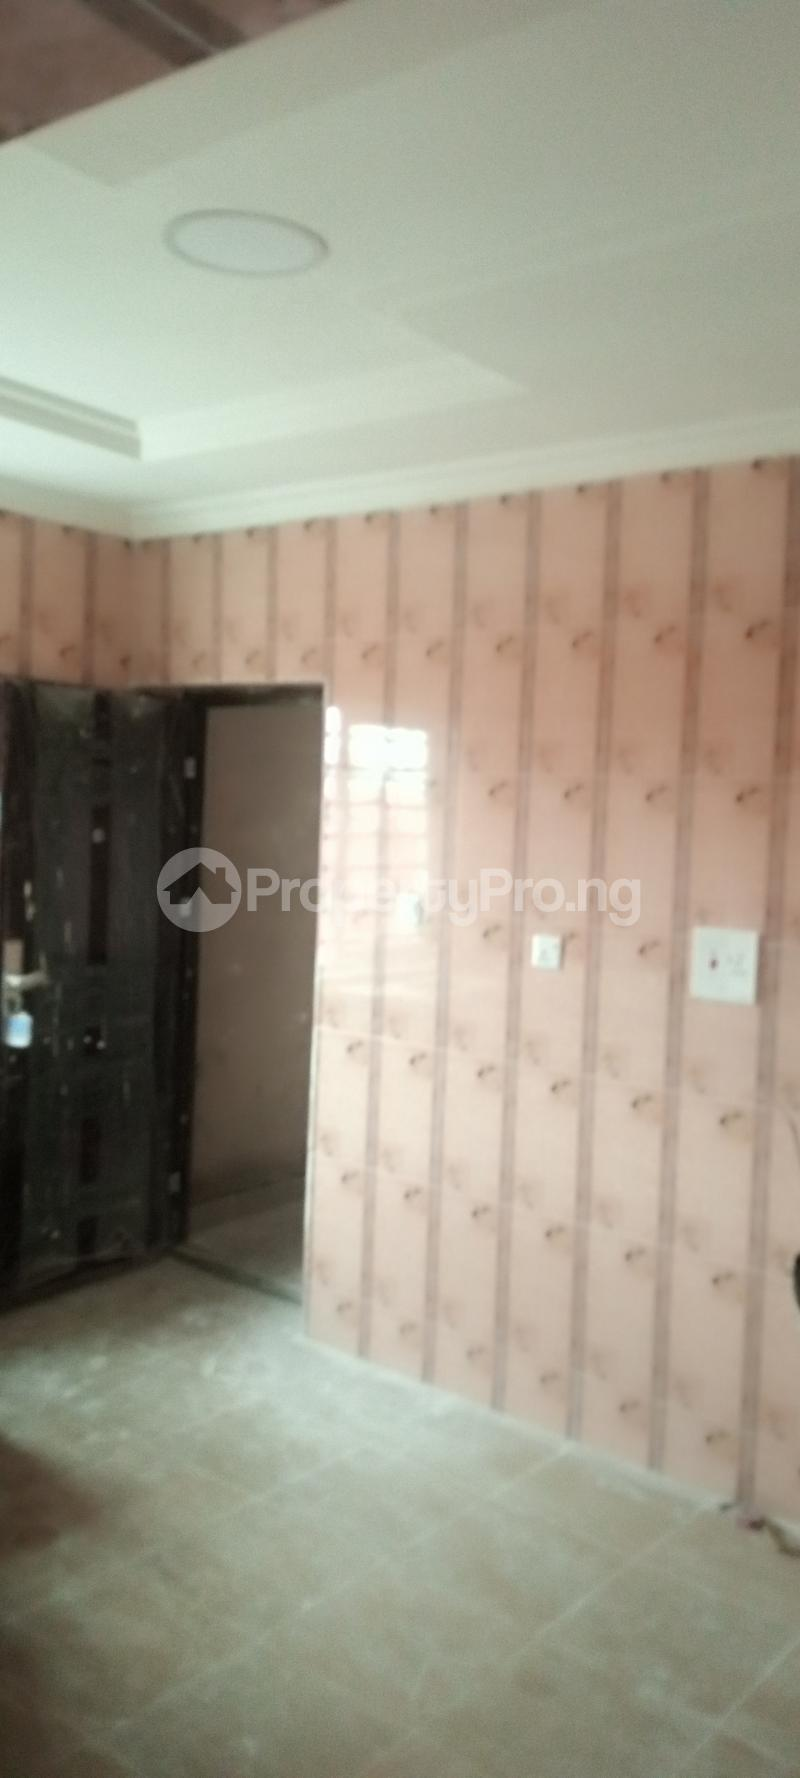 3 bedroom Flat / Apartment for rent A close Oke-Ira Ogba Lagos - 5